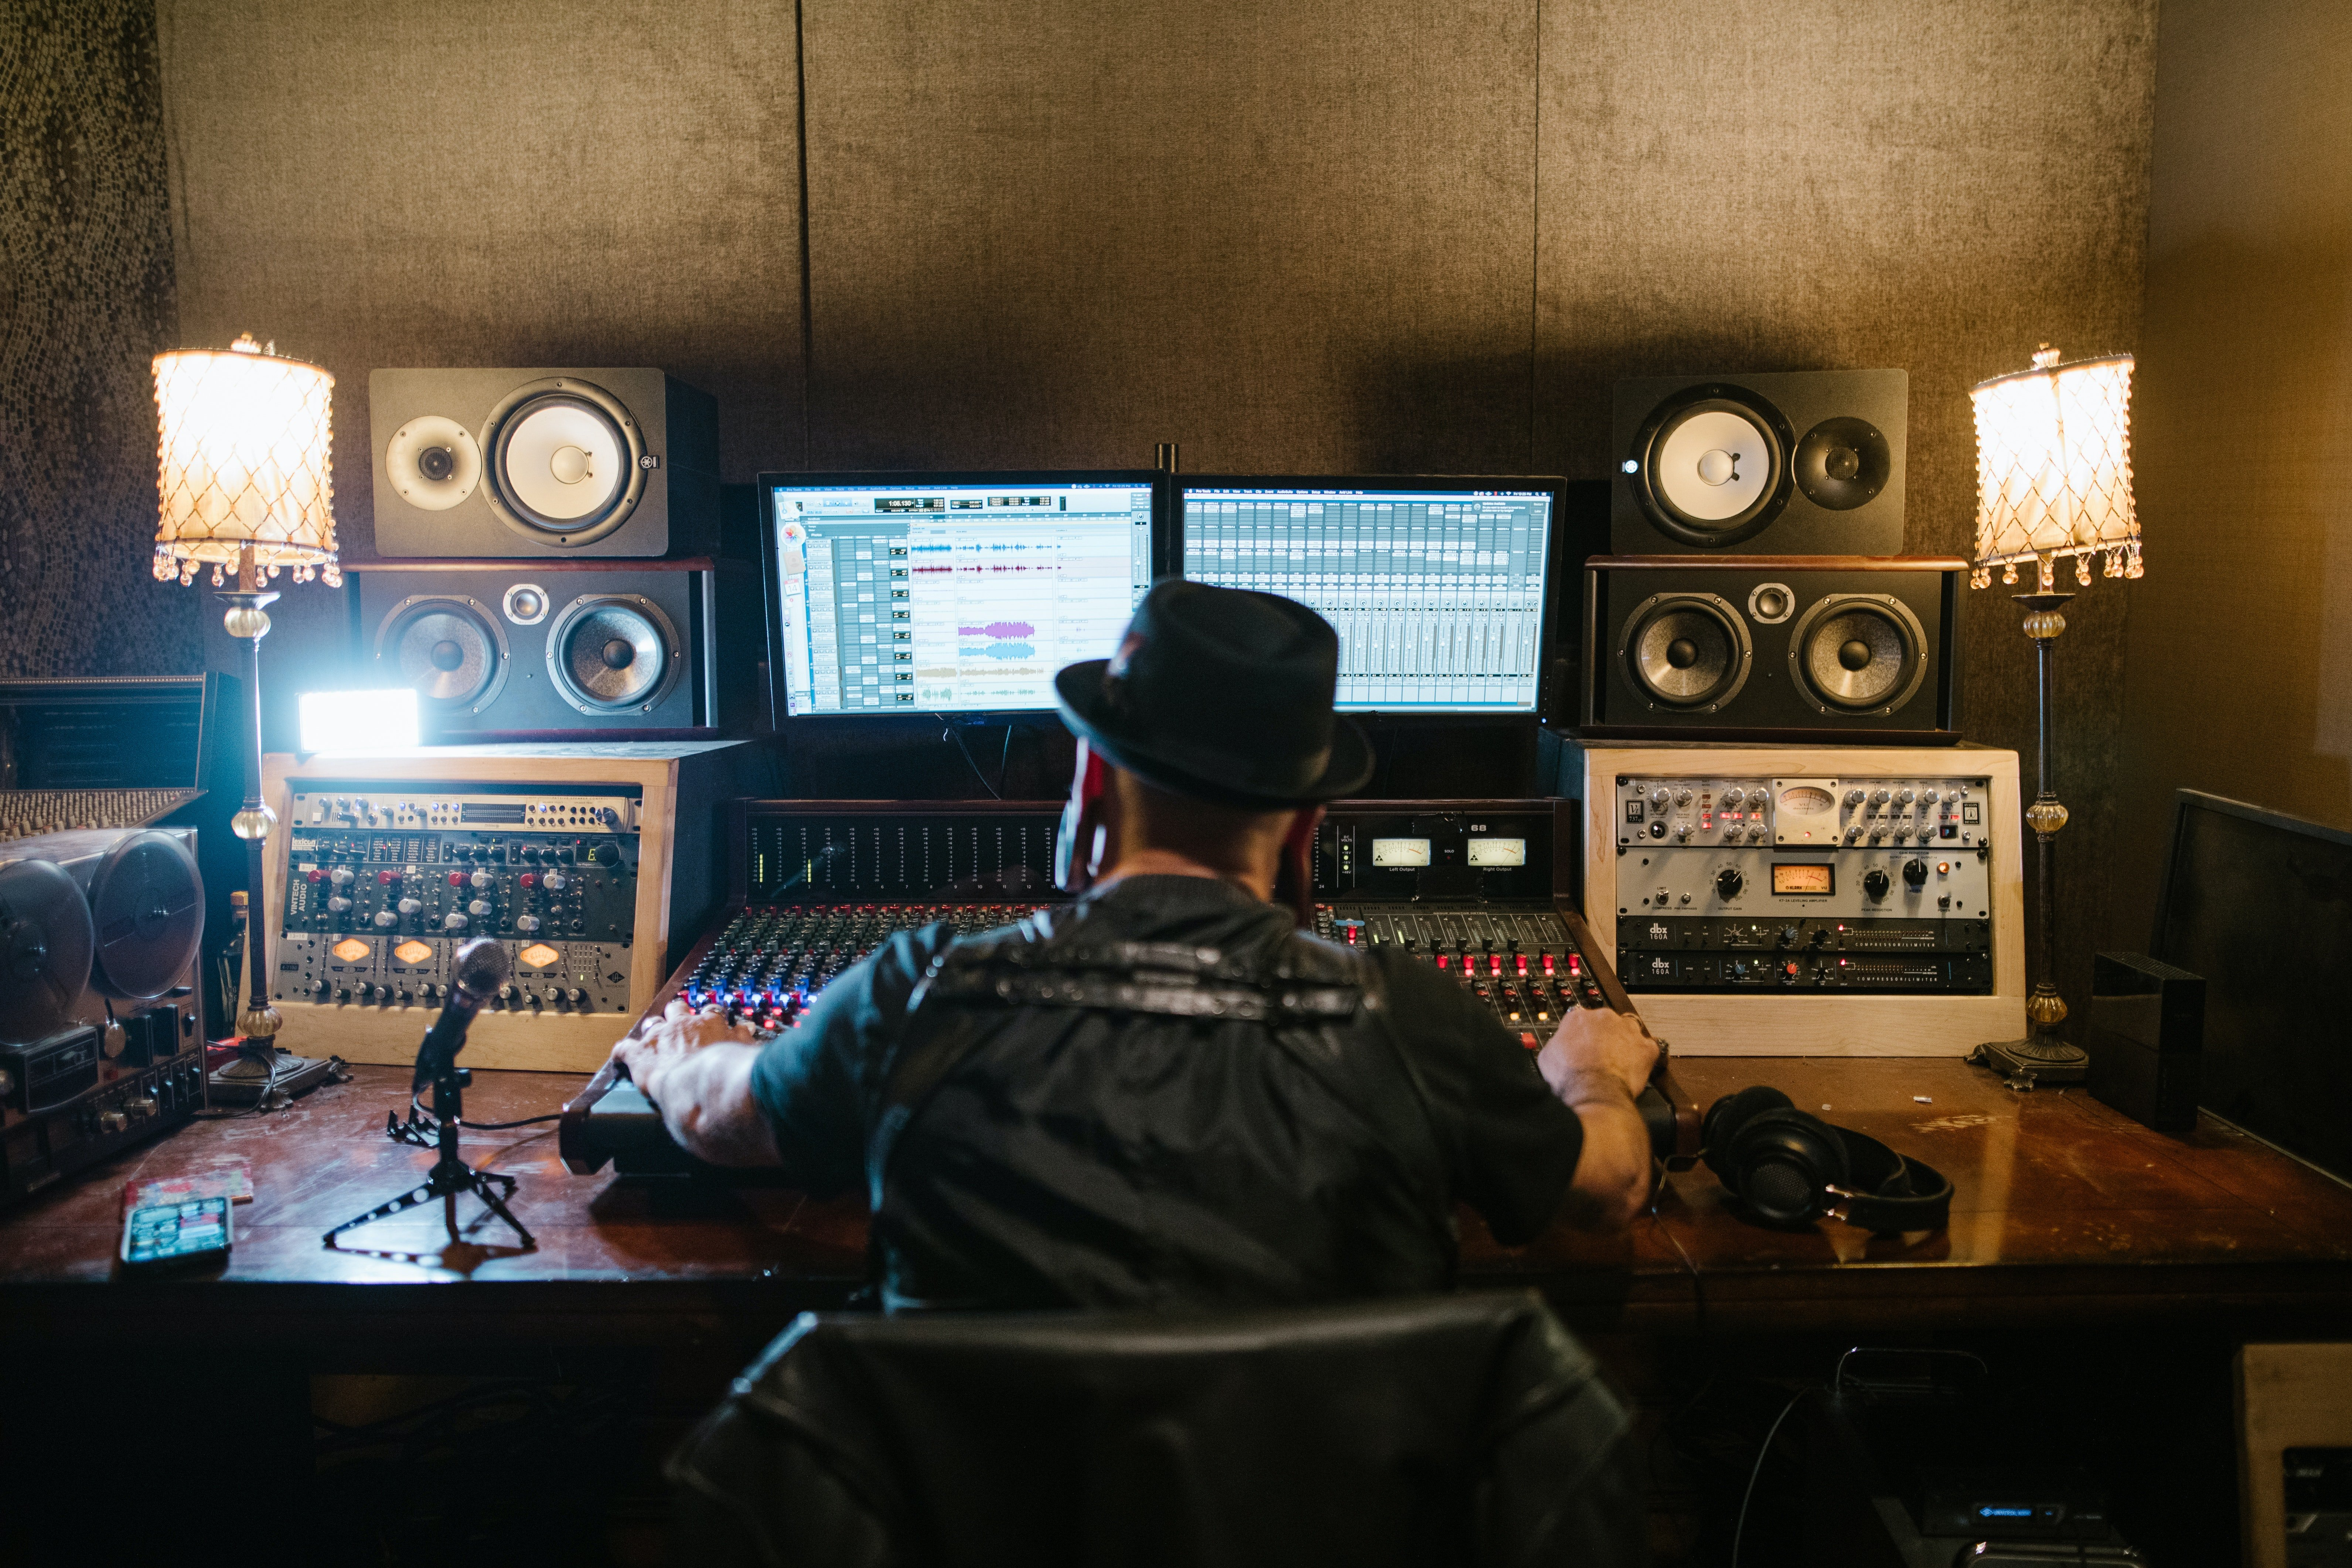 The old man turned out to be a music producer. | Photo: Pexels